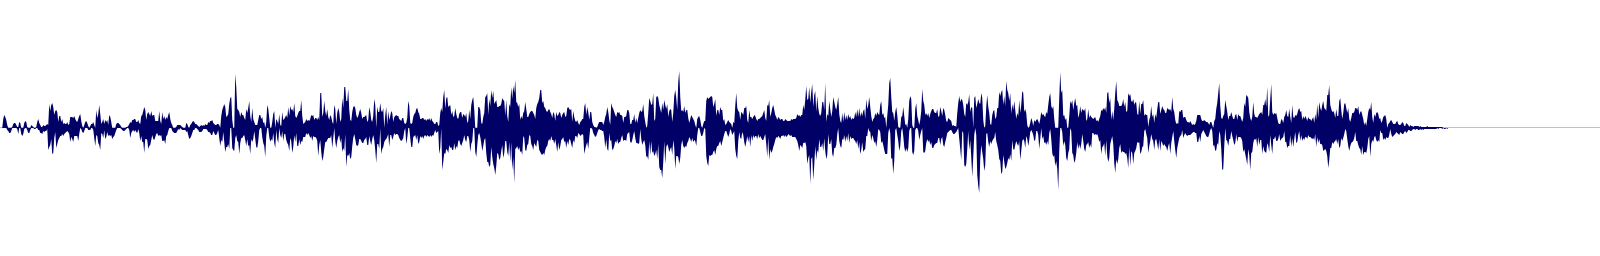 waveform of track #136812